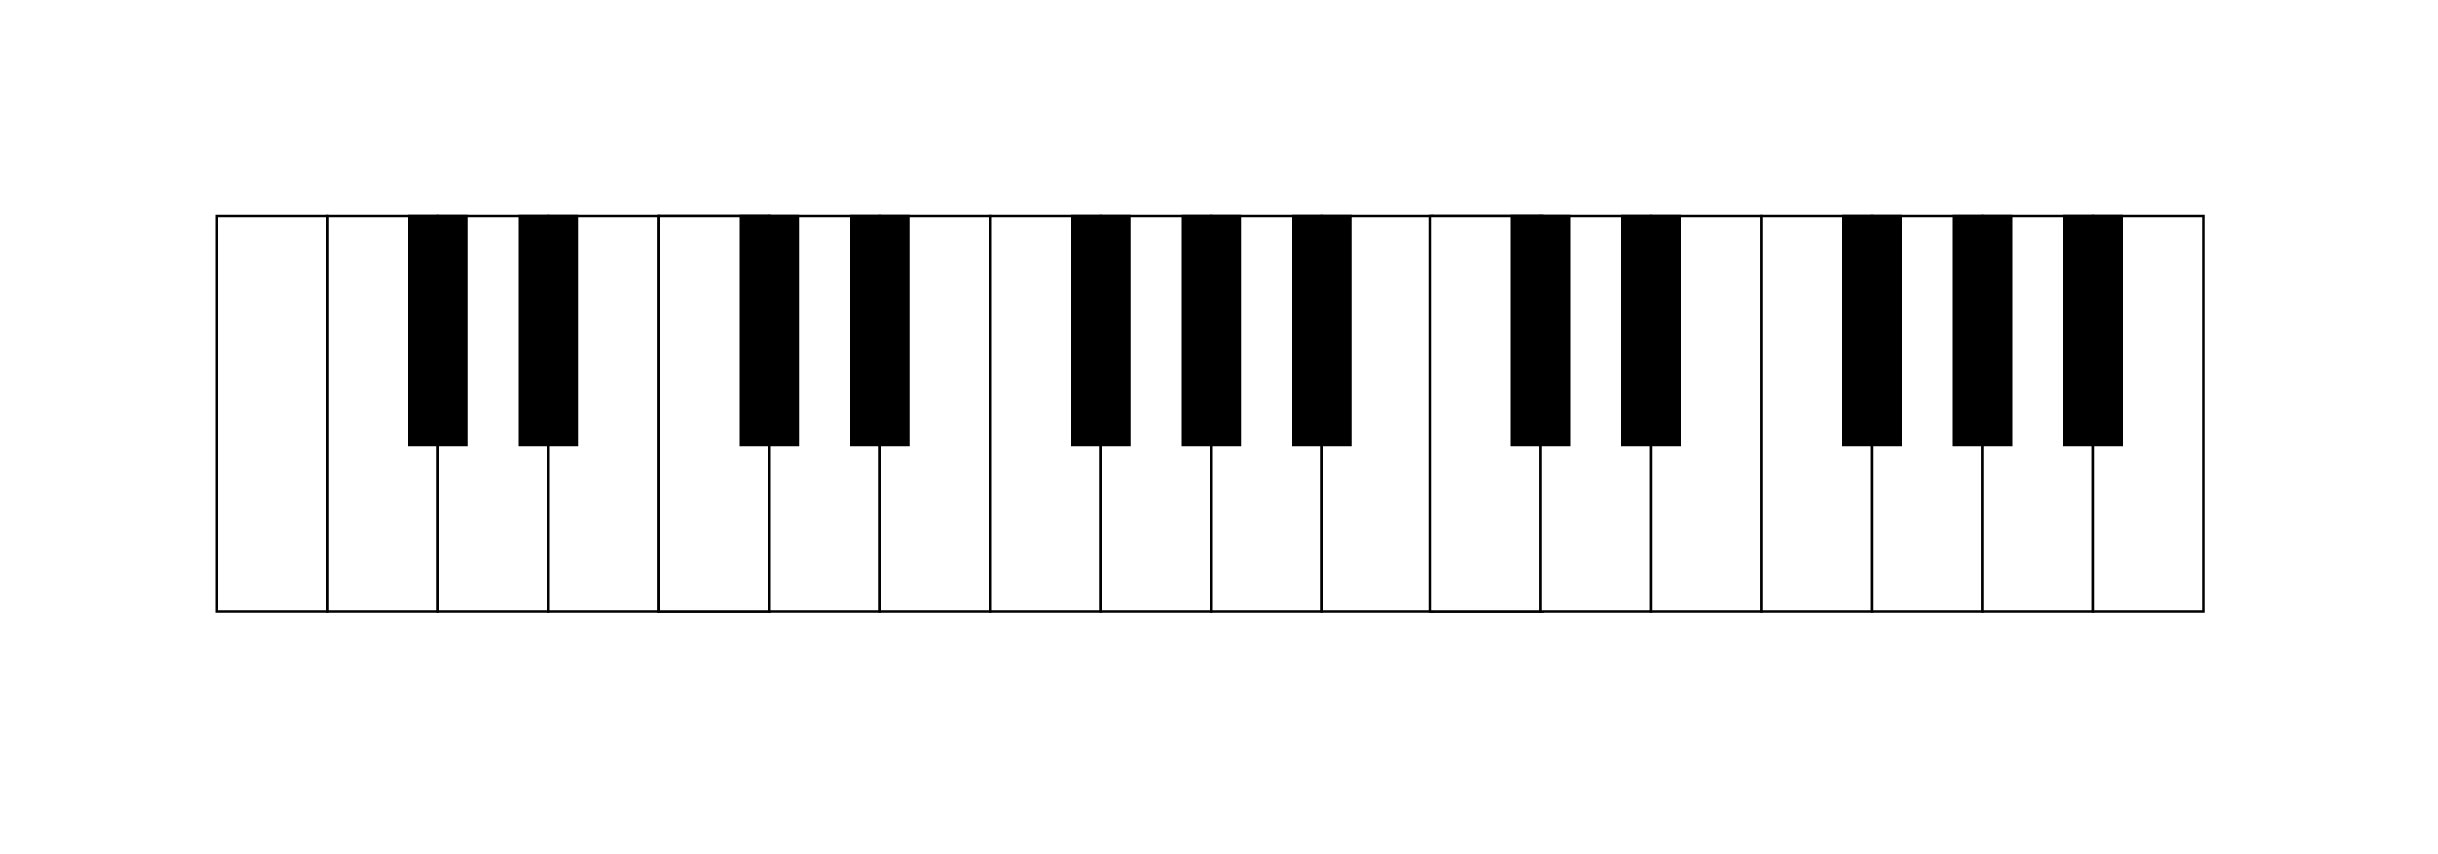 In major keys, minor 7th chords works well on the ii,iii, and vi (2nd,3rd and 6th) degrees of the scale